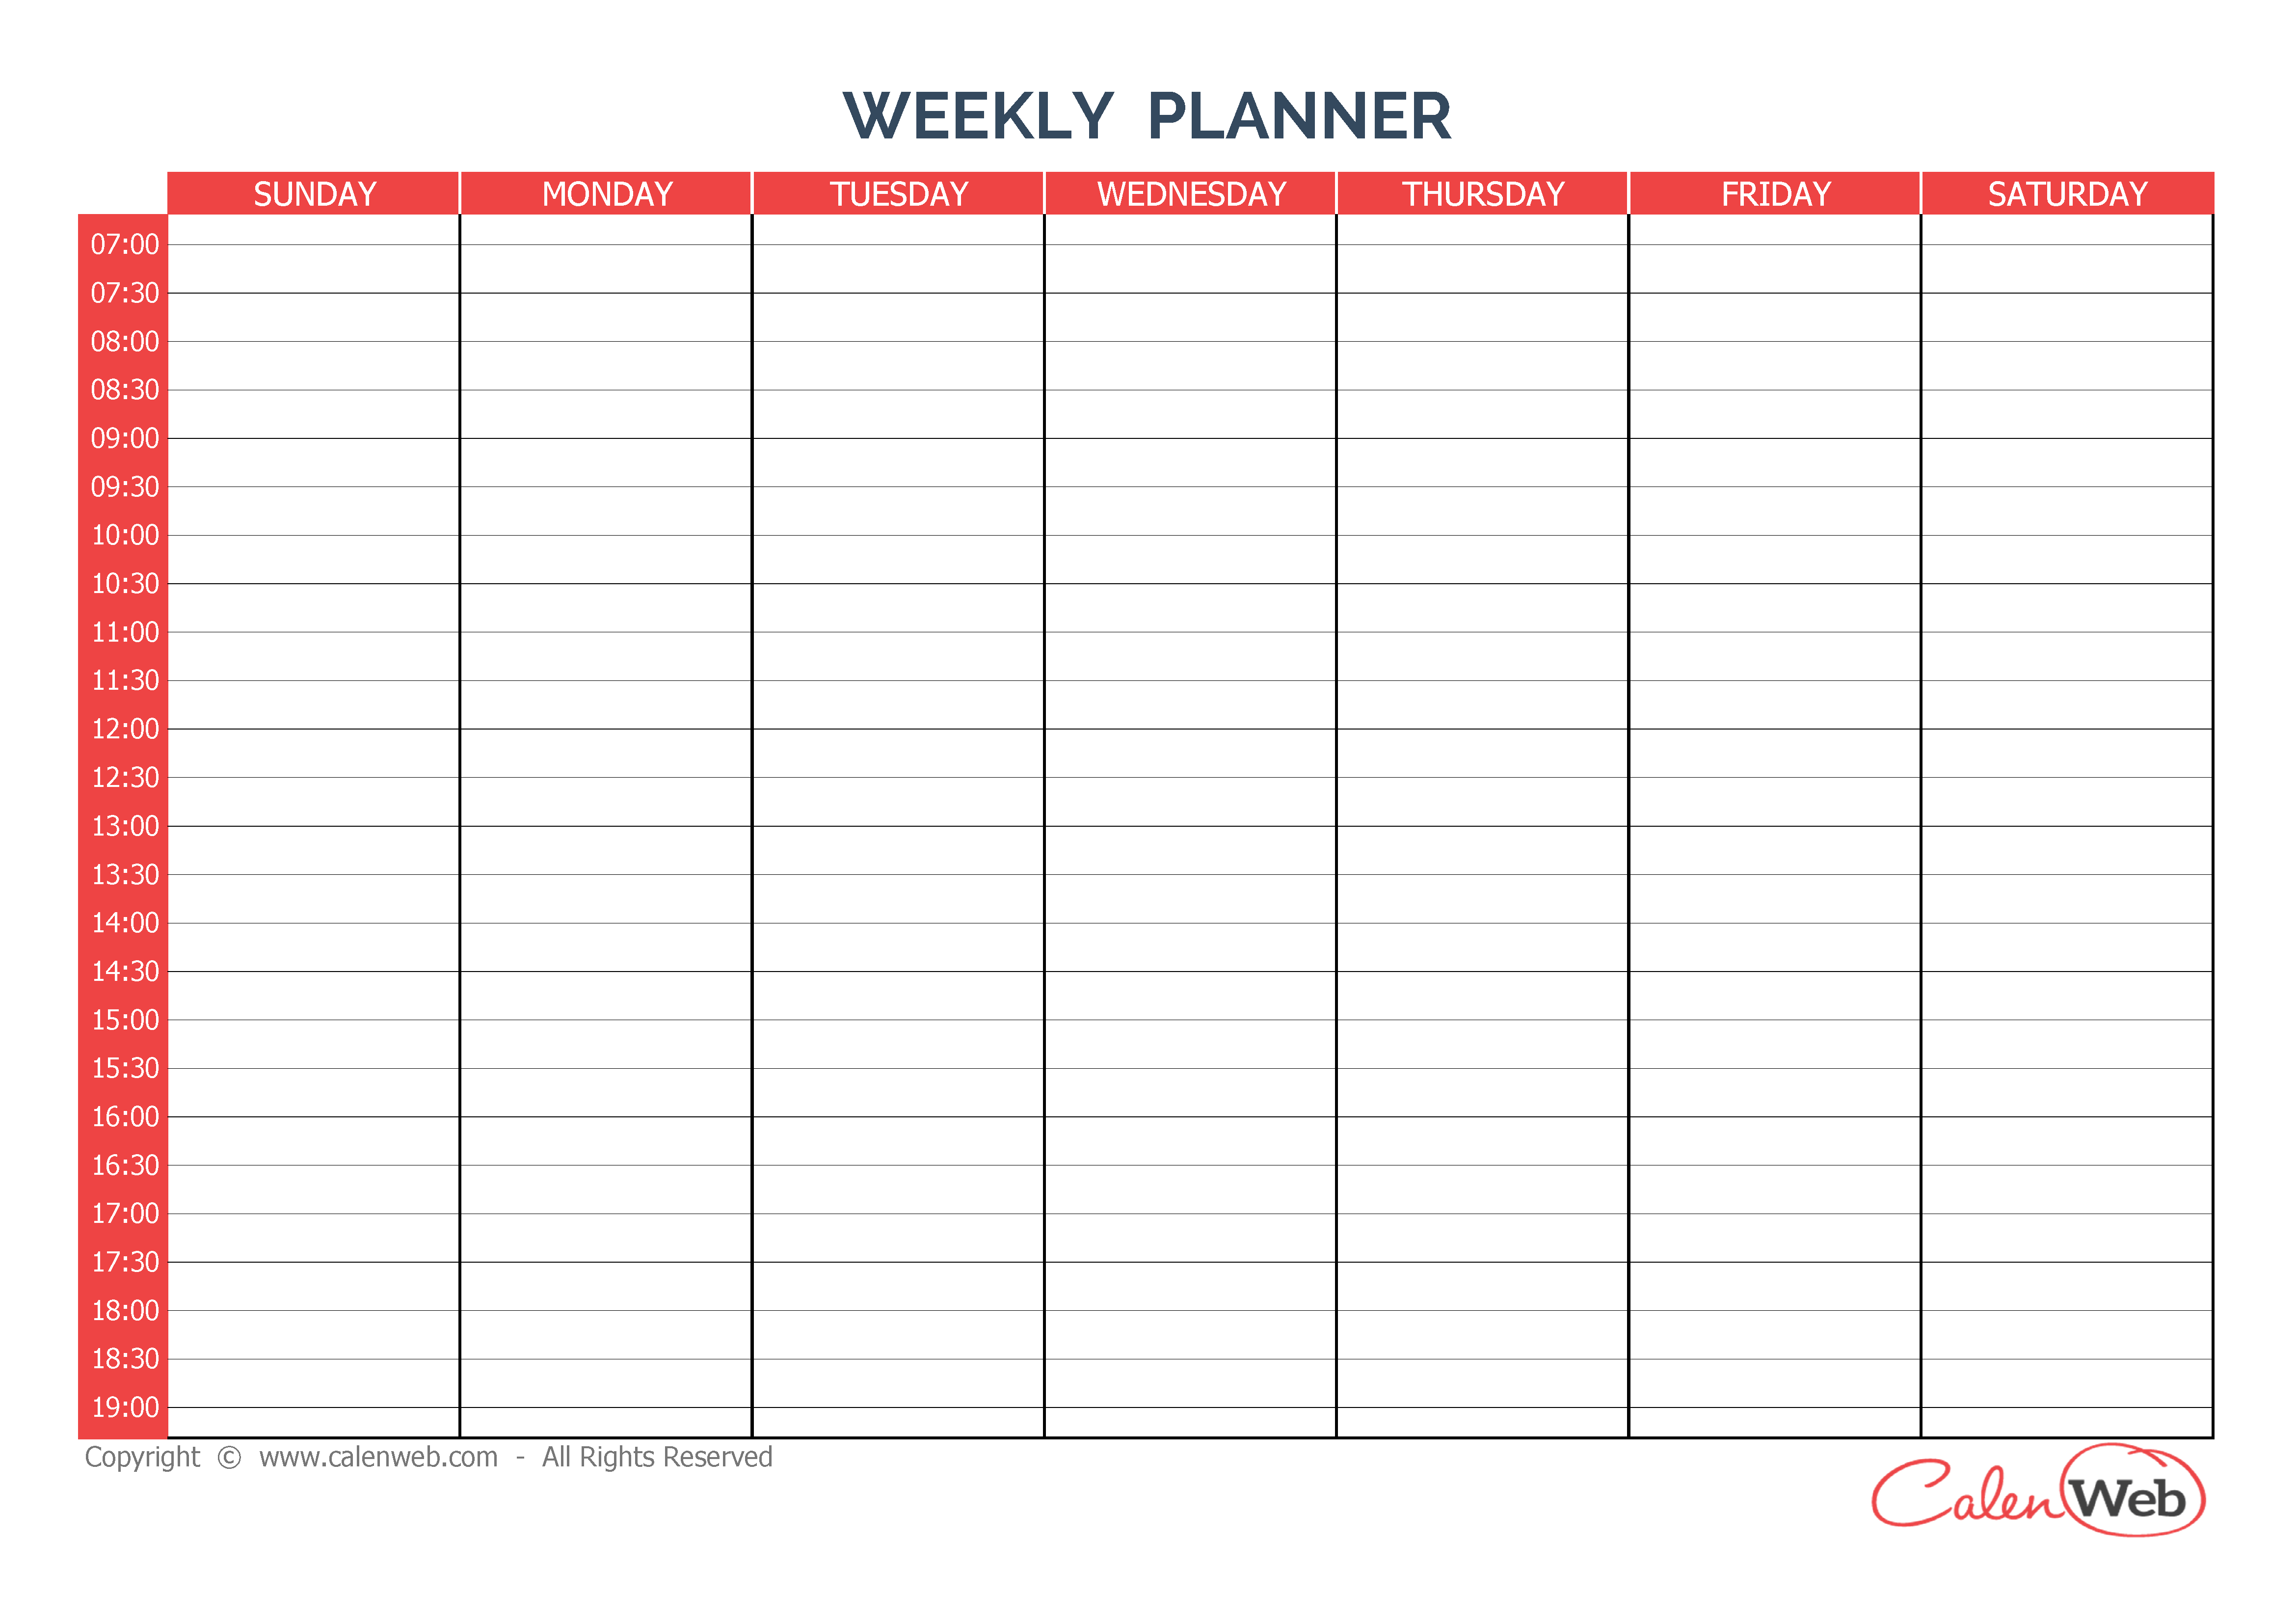 Weekly Planner 7 Days - First Day: Sunday A Week Of 7 Days